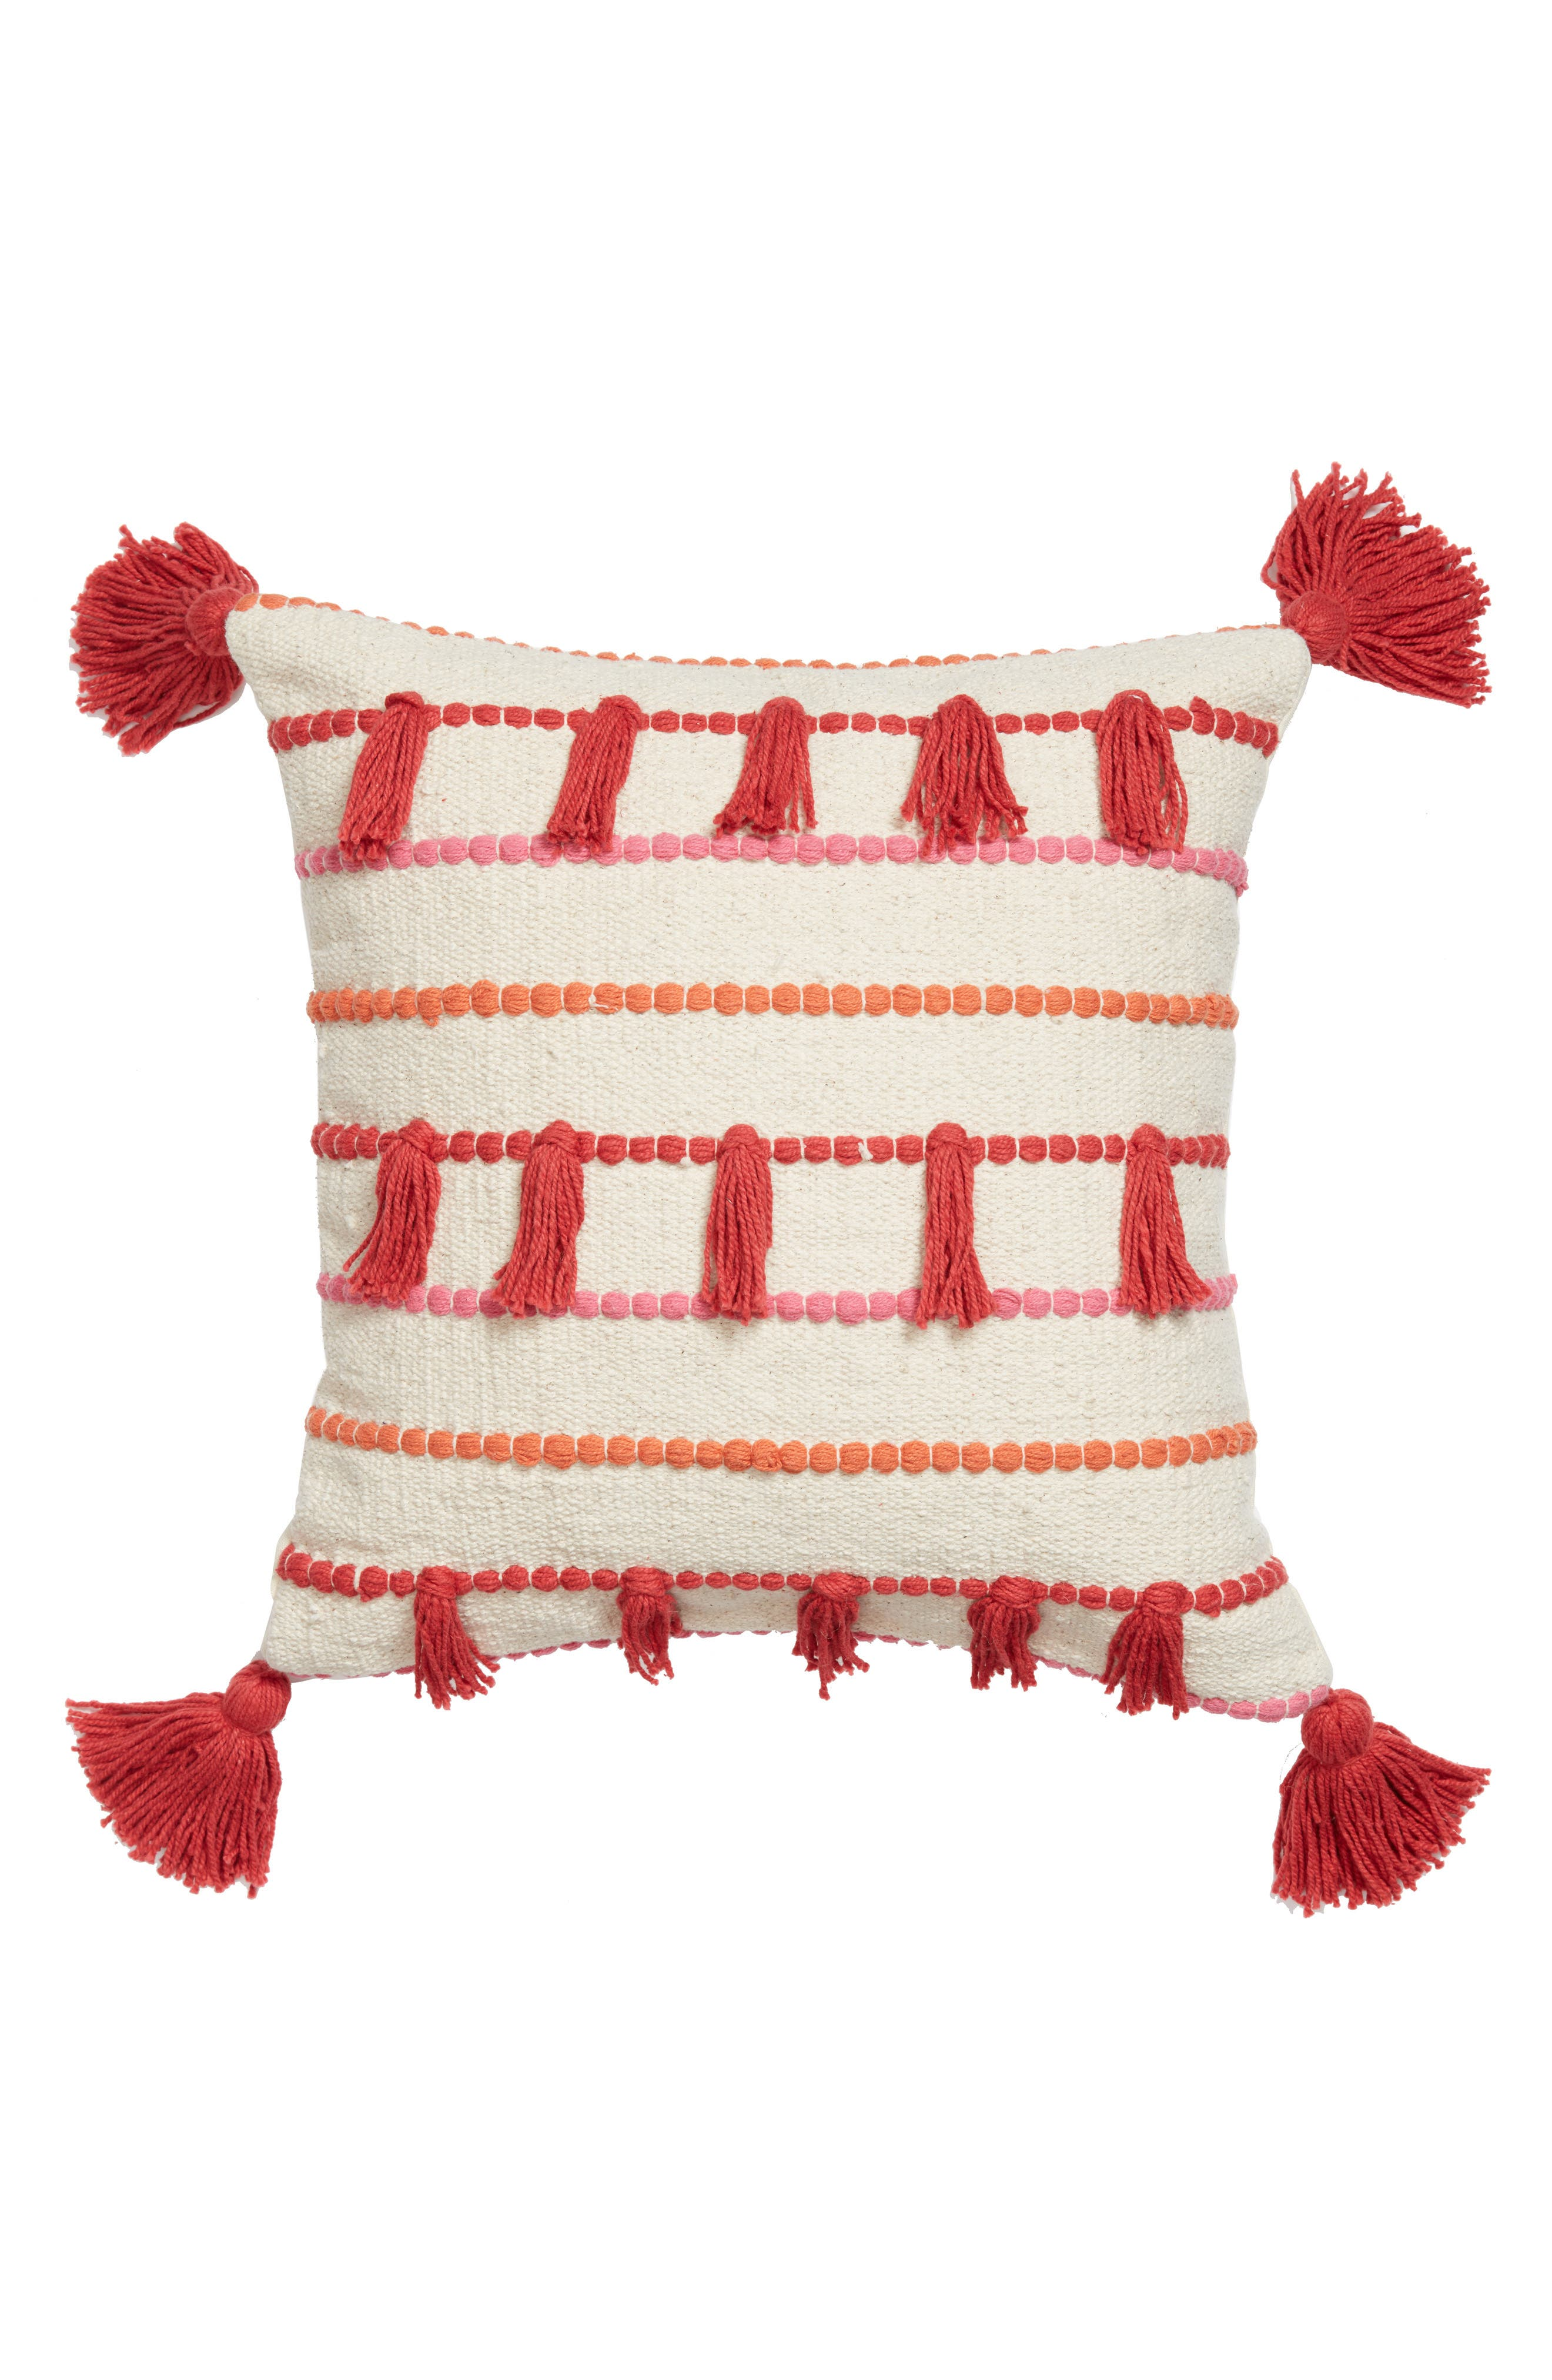 BRENTWOOD ORIGINALS Knotted Tassel Accent Pillow, Main, color, 250